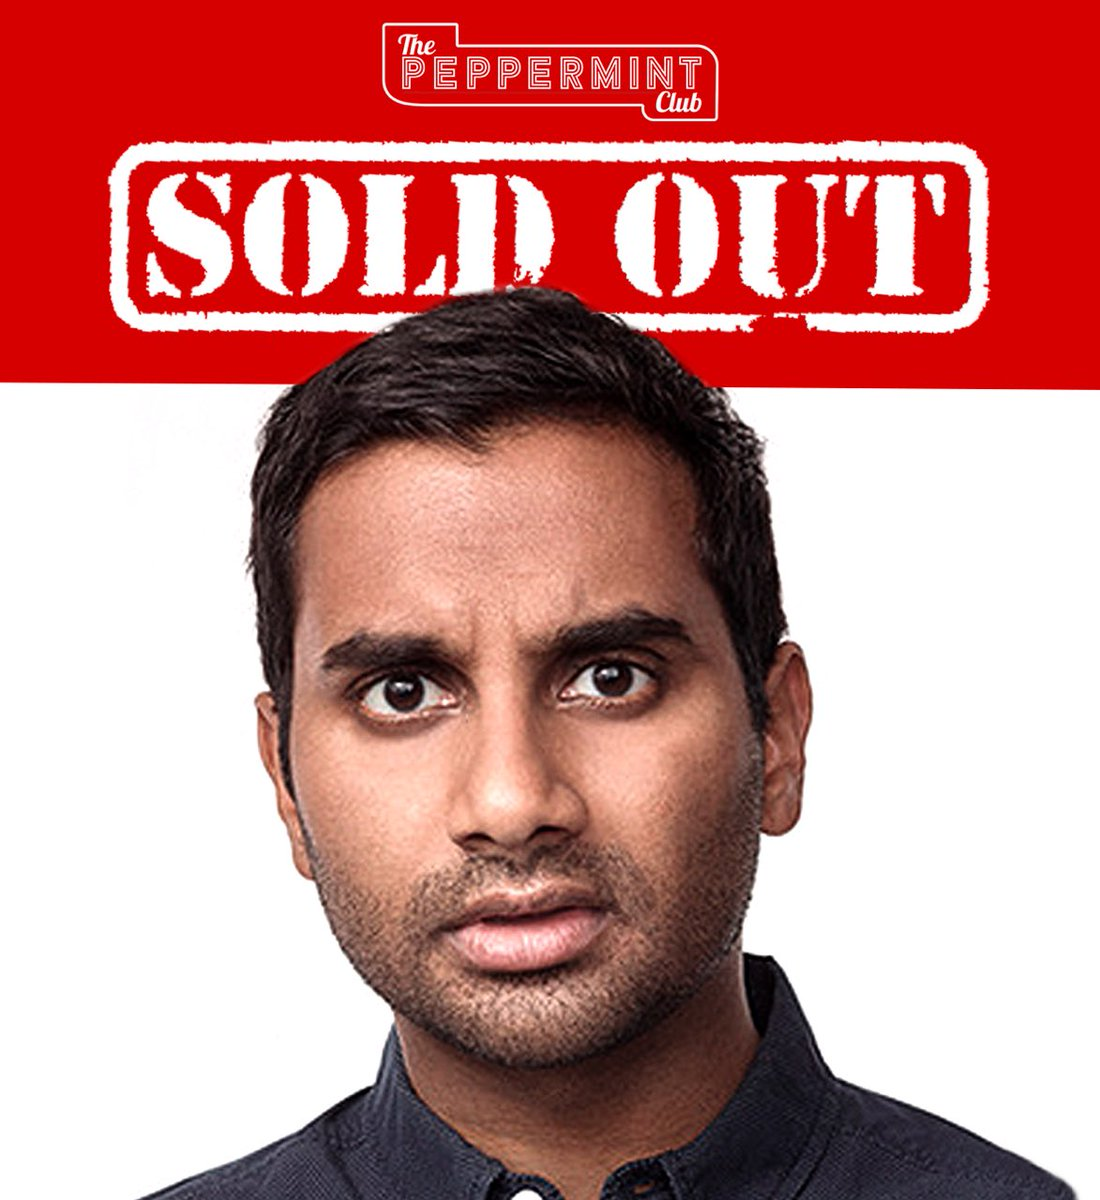 🎟 S O L D O U T 🎟 We are super hyped to have @azizansari perform tonight! ITS A SELL OUT BABY! LETS GO! 💯